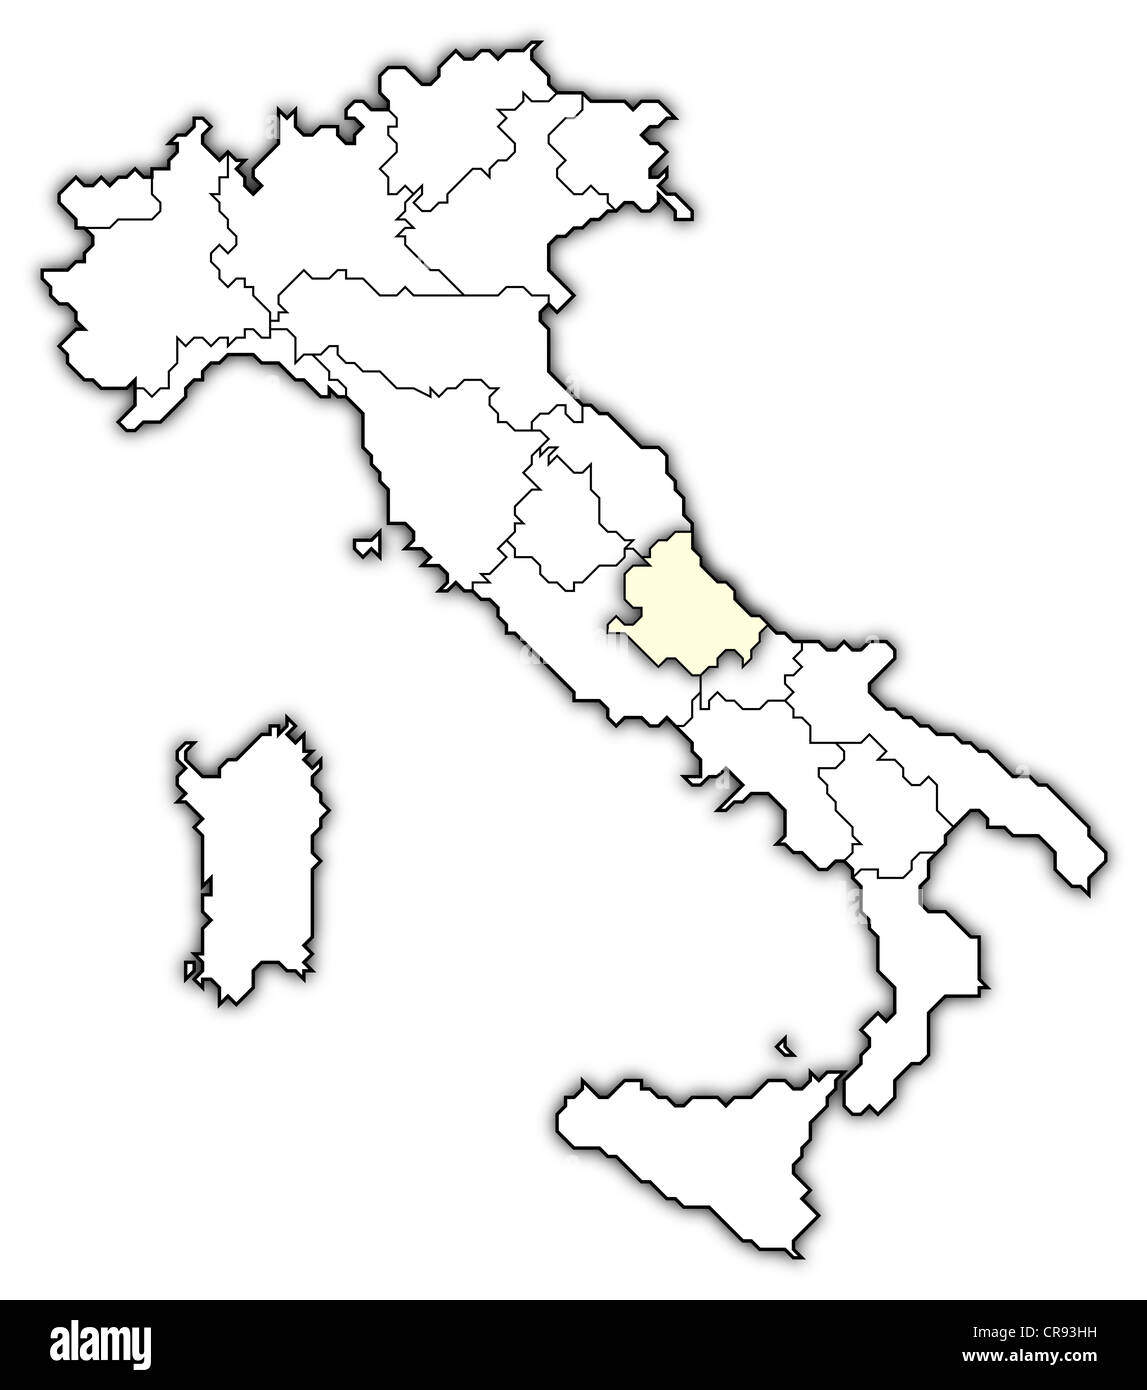 Map Of Italy Abruzzo Region.Political Map Of Italy With The Several Regions Where Abruzzo Is